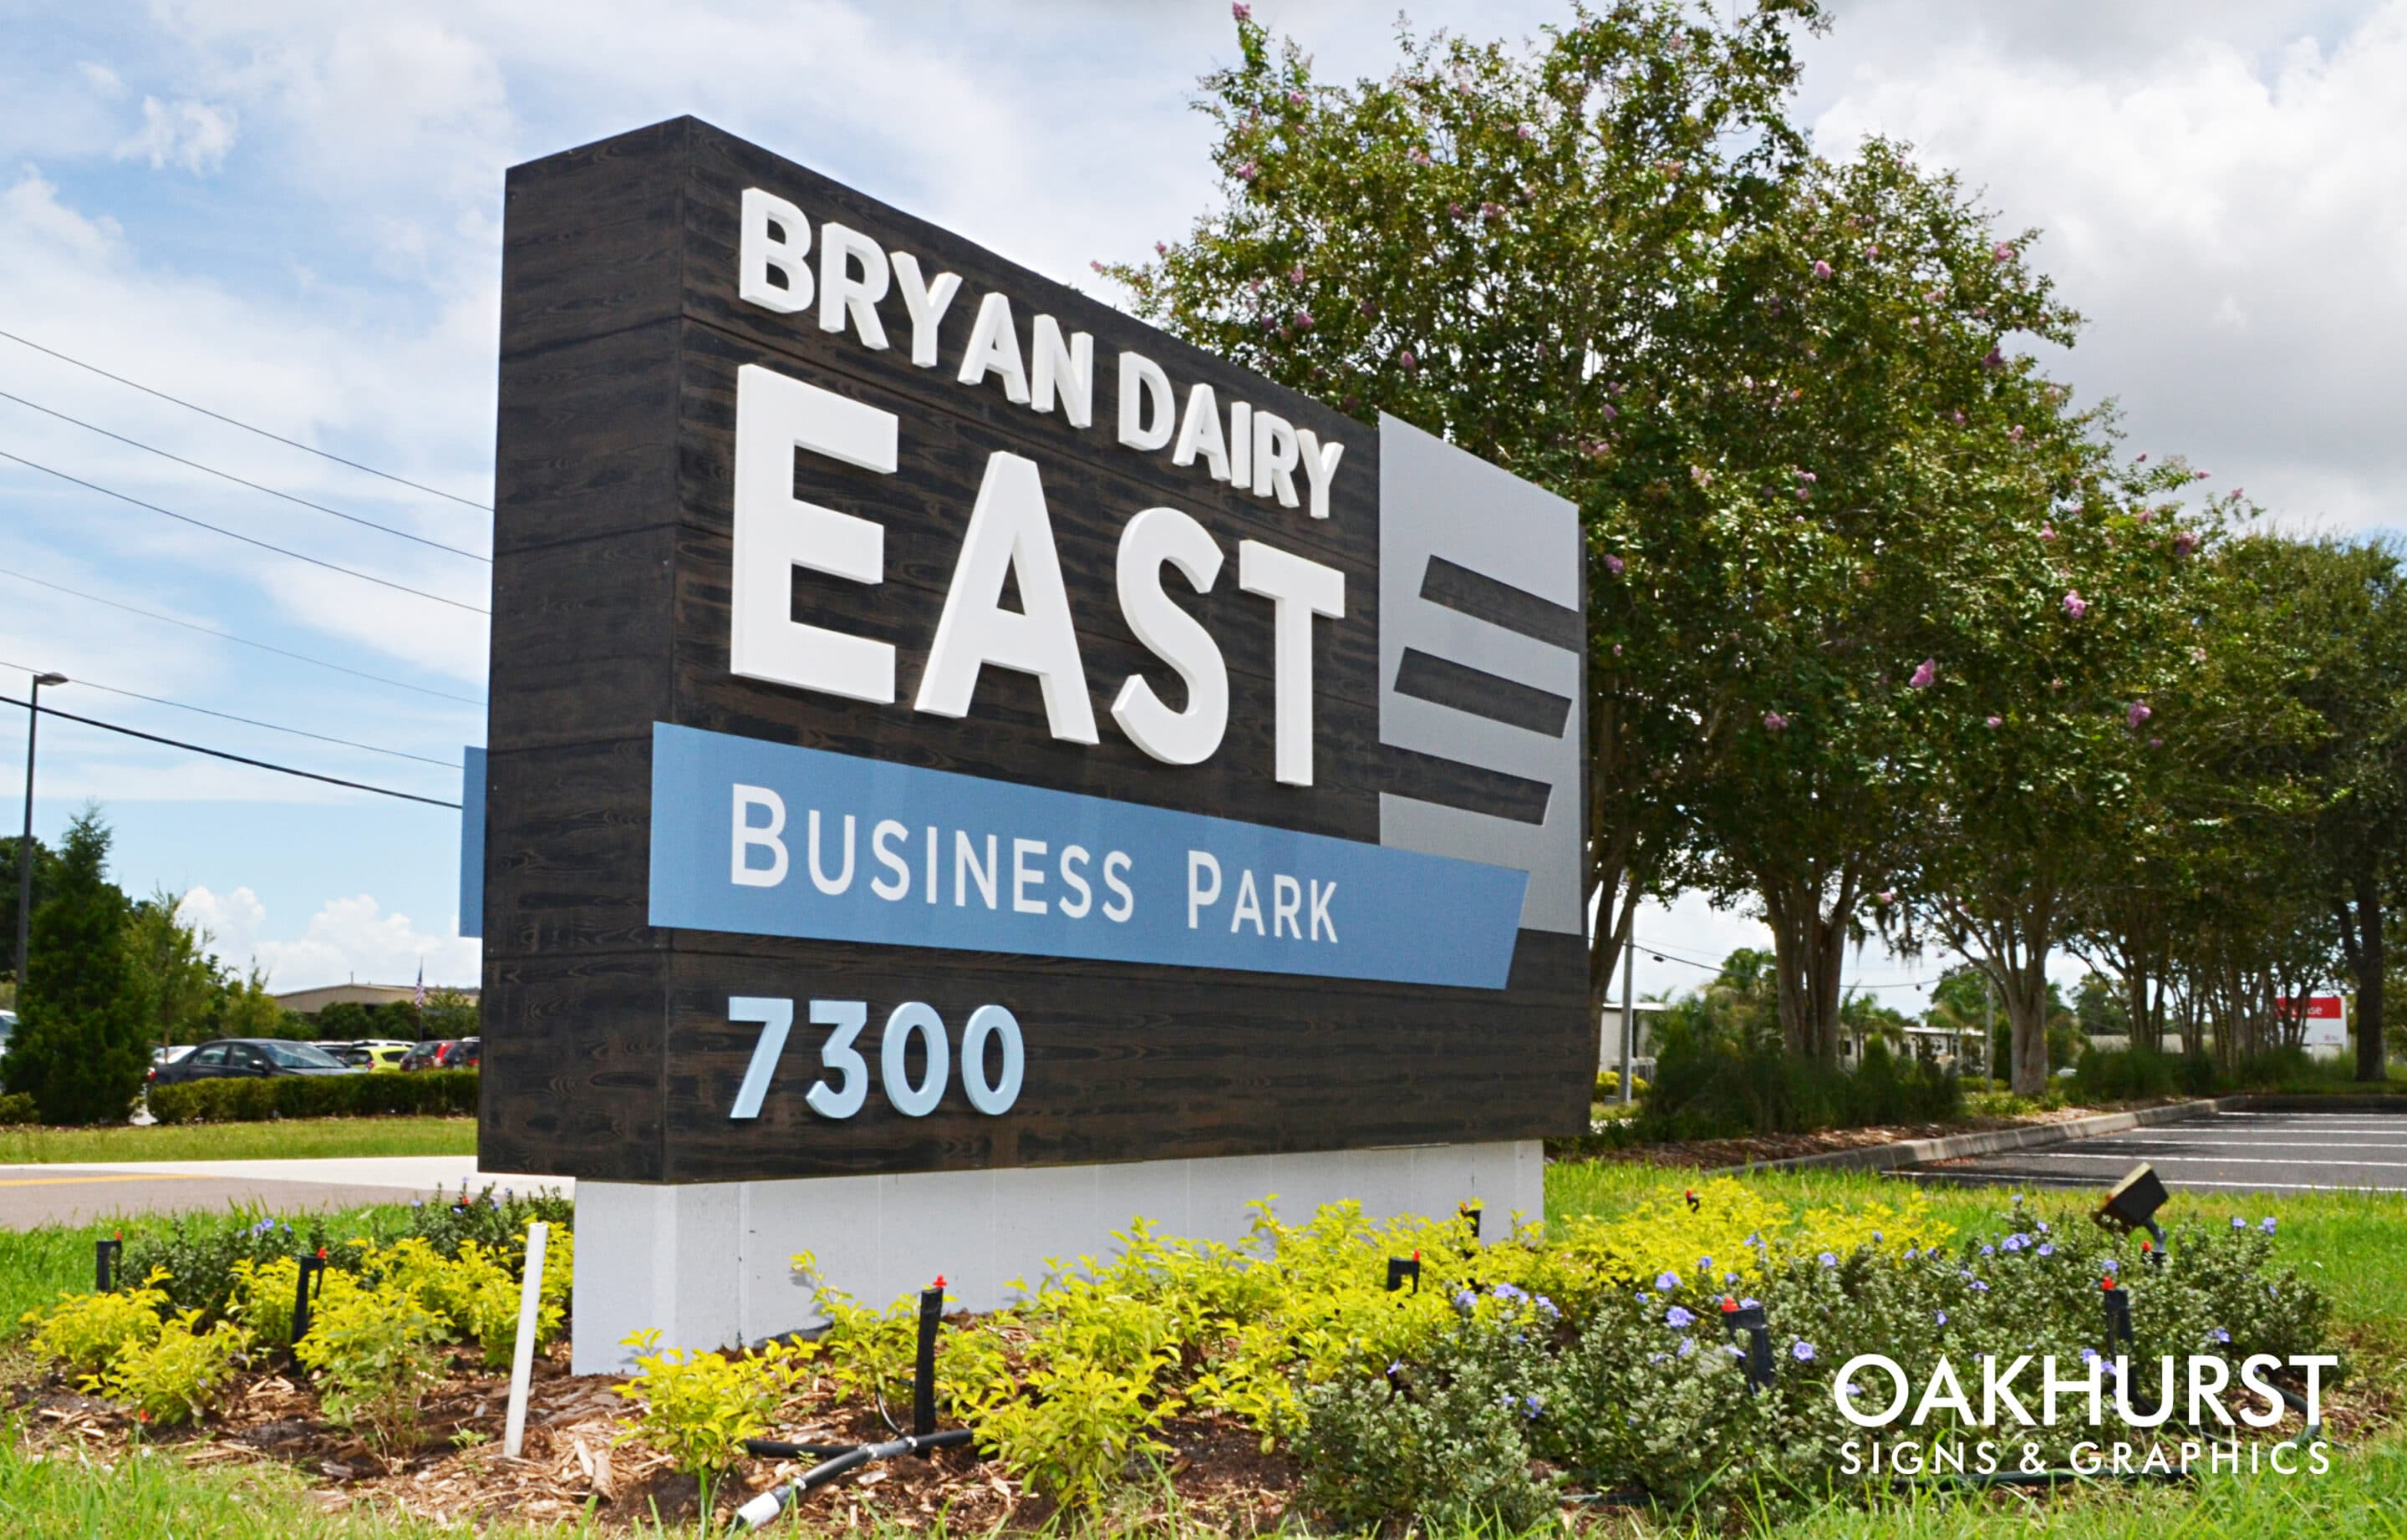 Business park monument sign from the front